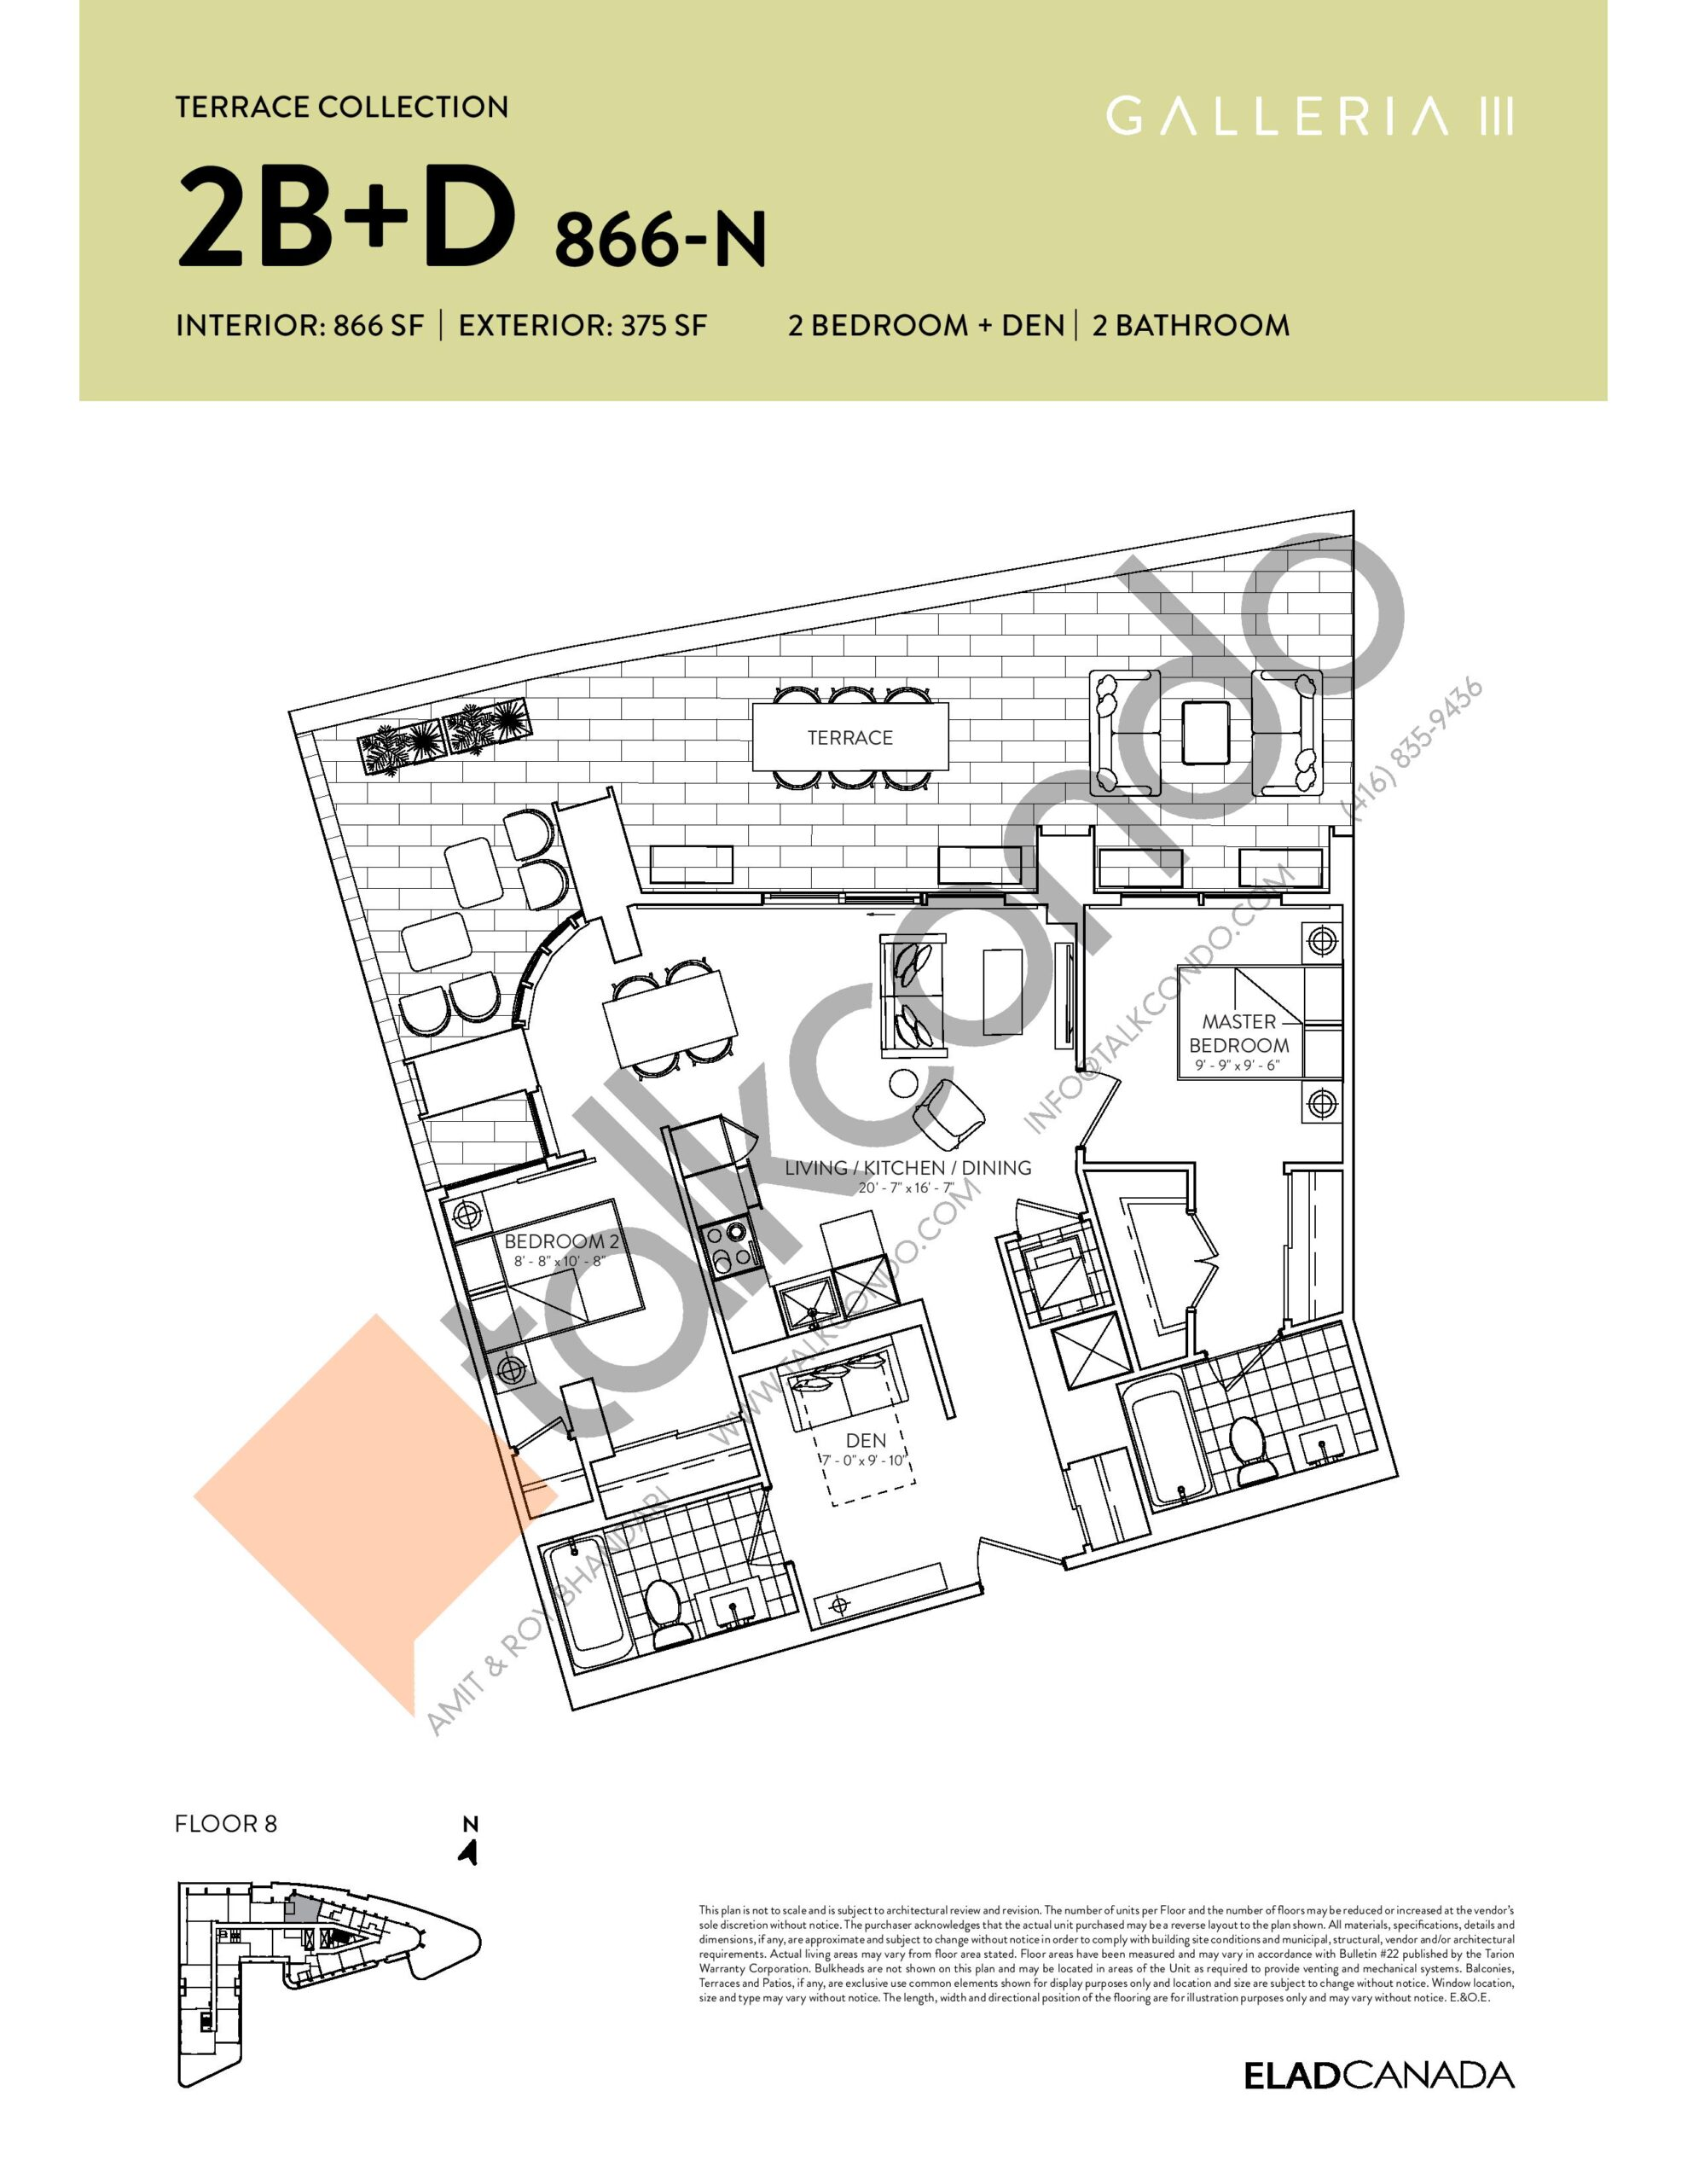 2B+D 866-N - Terrace Collection Floor Plan at Galleria 03 Condos - 866 sq.ft